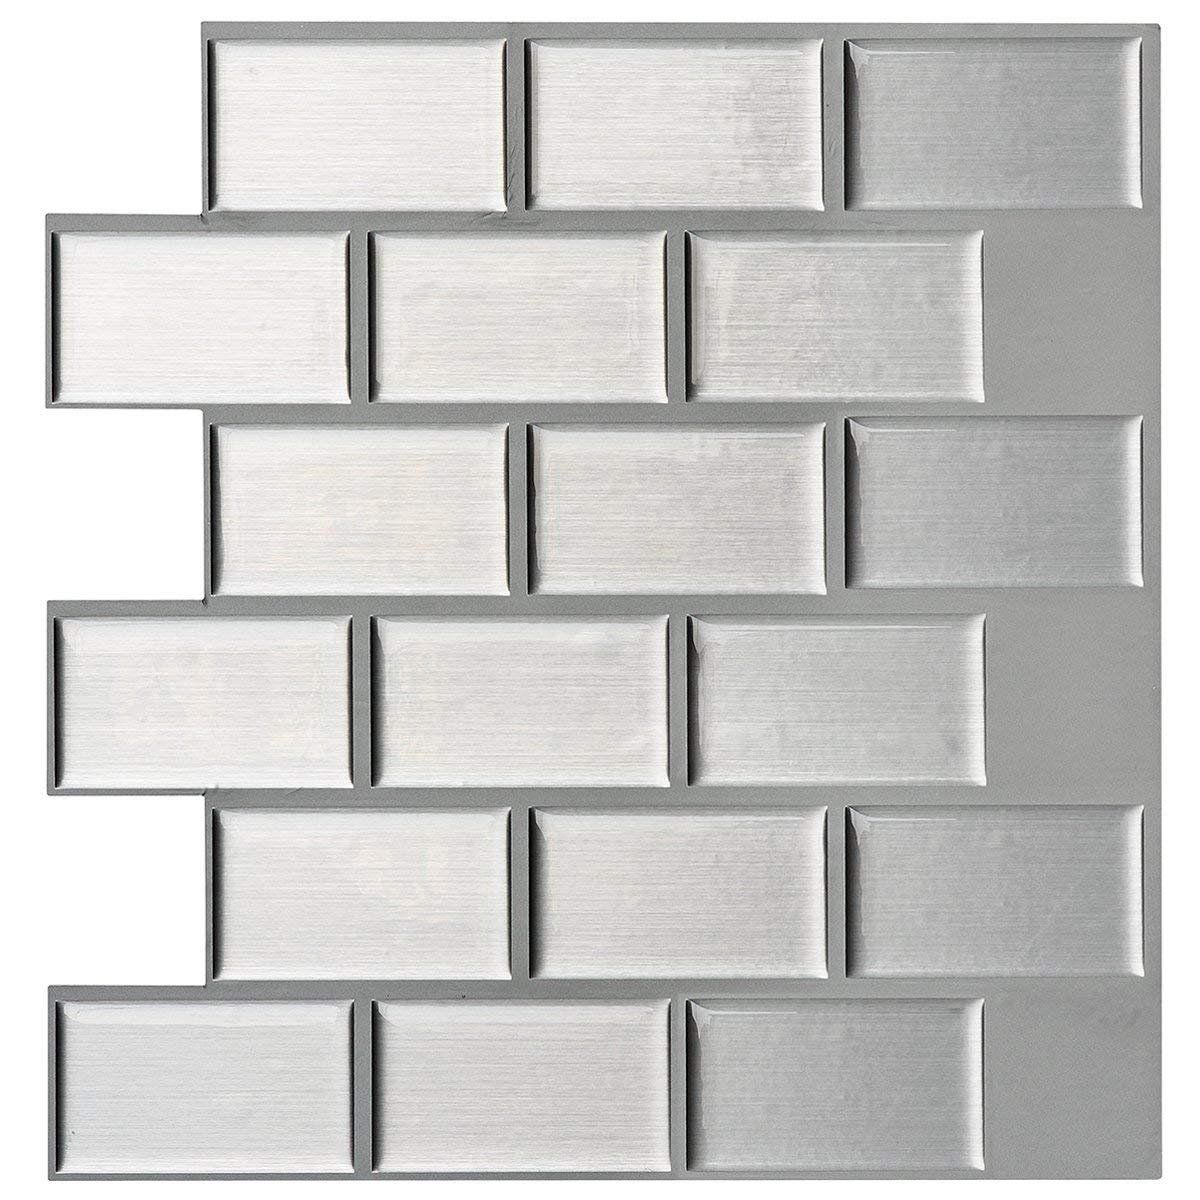 Art3d Silver Metal 12 In X 12 In Peel And Stick Wall Tile Backsplash 6 Pack Walmart Com In 2020 Decorative Wall Tiles Instant Mosaic Wall Tiles